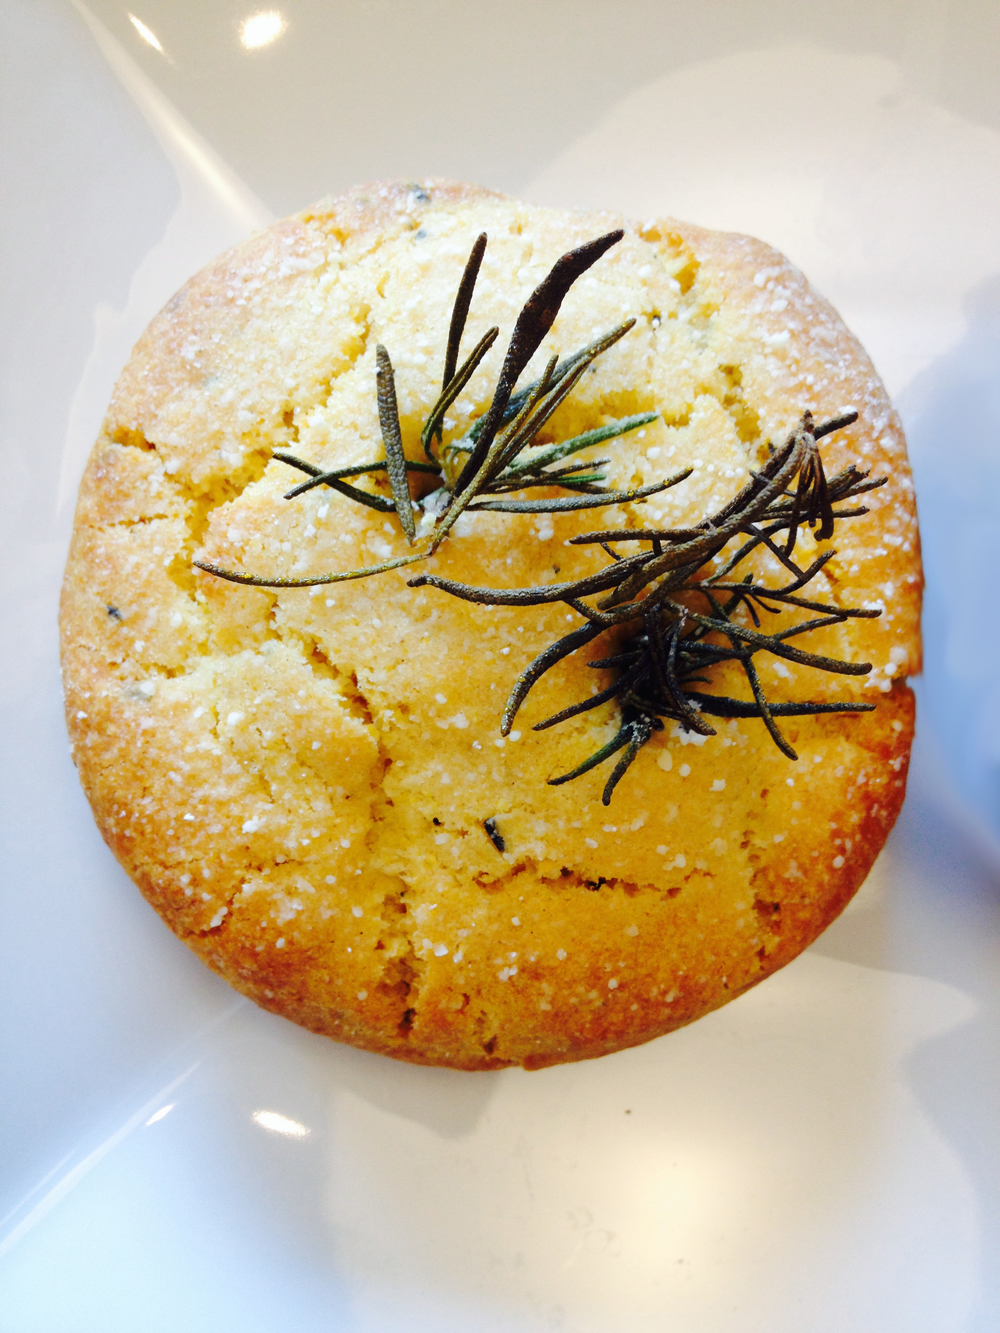 Rosemary corn scone.